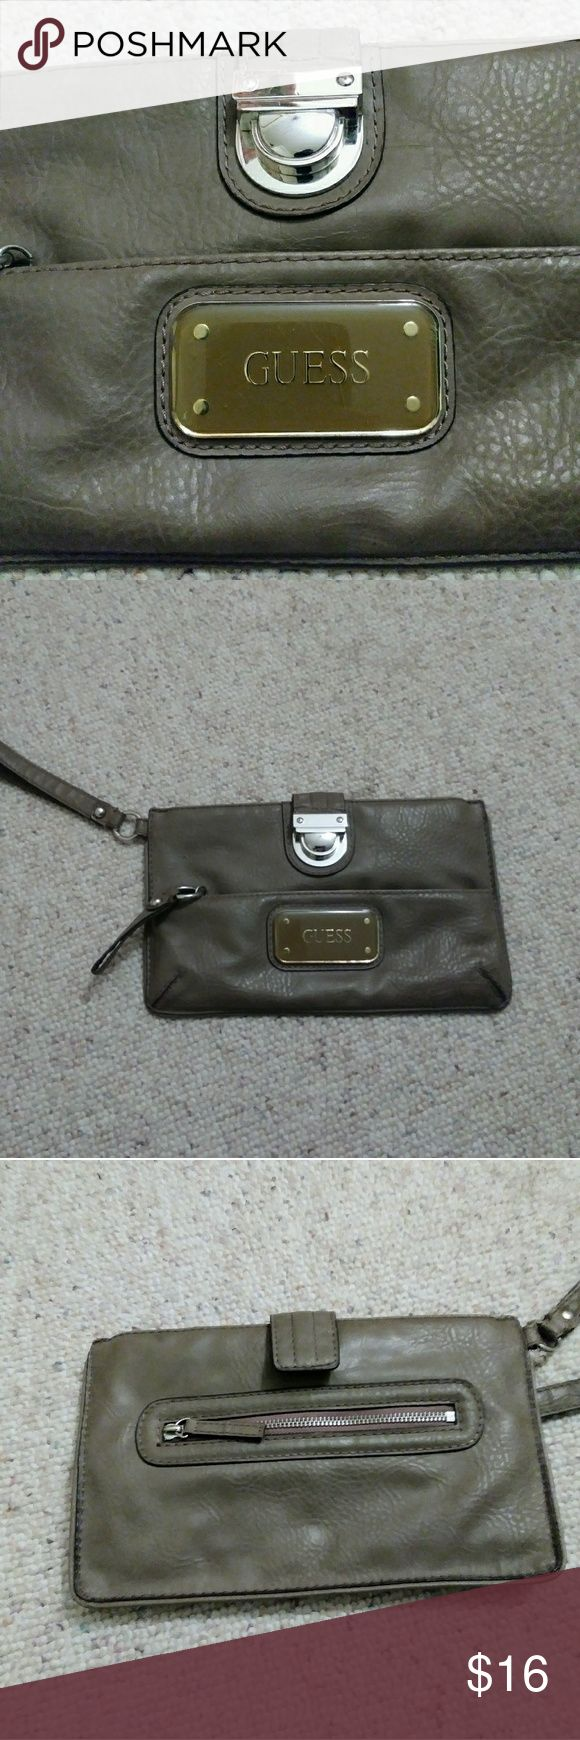 NWOT Guess Faux Leather Clutch Evening Bag A slim, minimalist silhouette in soft pebble faux leather, this GUESS clutch wallet is a great wardrobe basic. Guess Bags Clutches & Wristlets